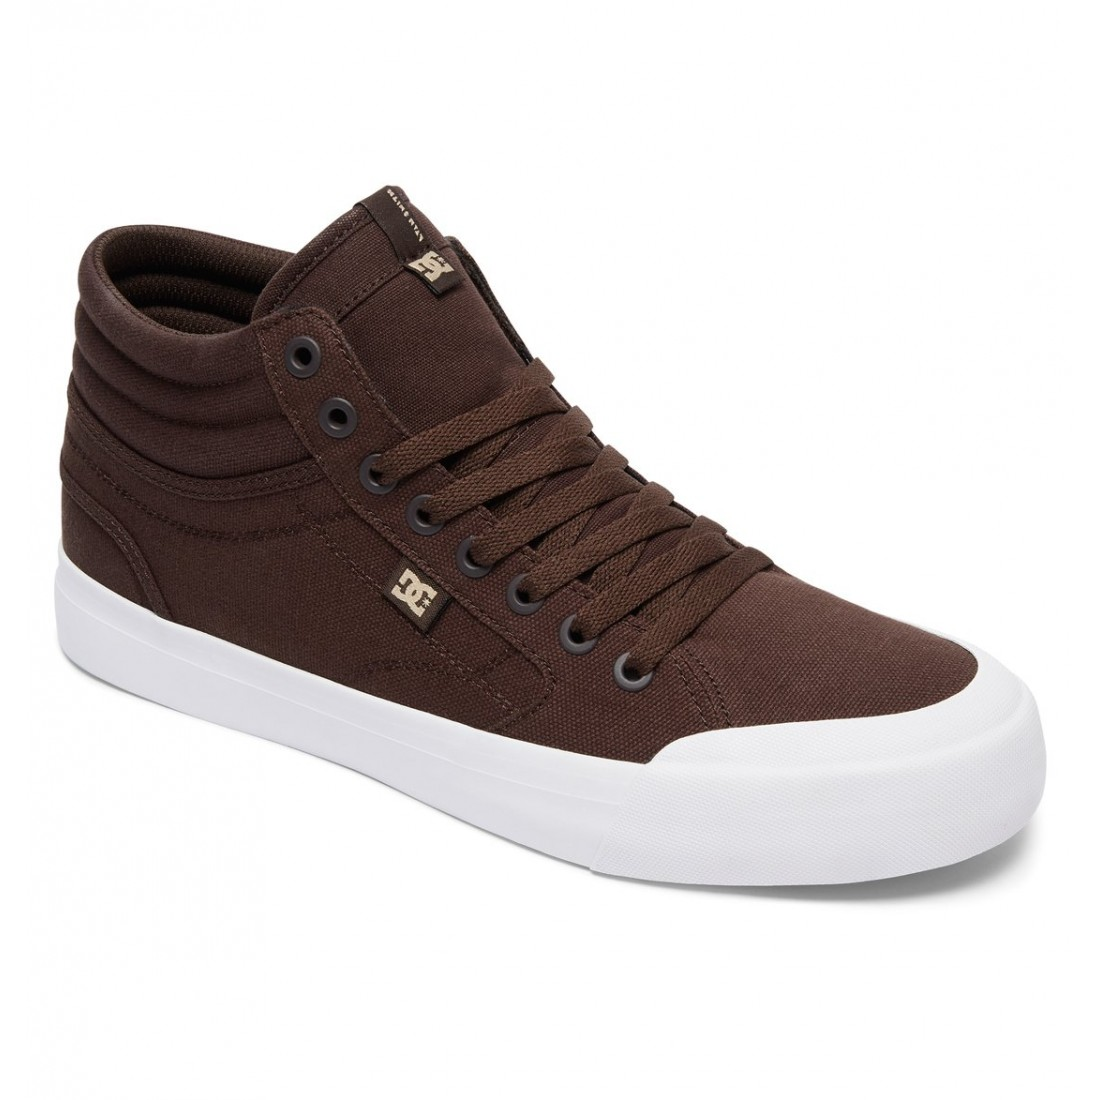 EVANSMITH HI TX chocolate